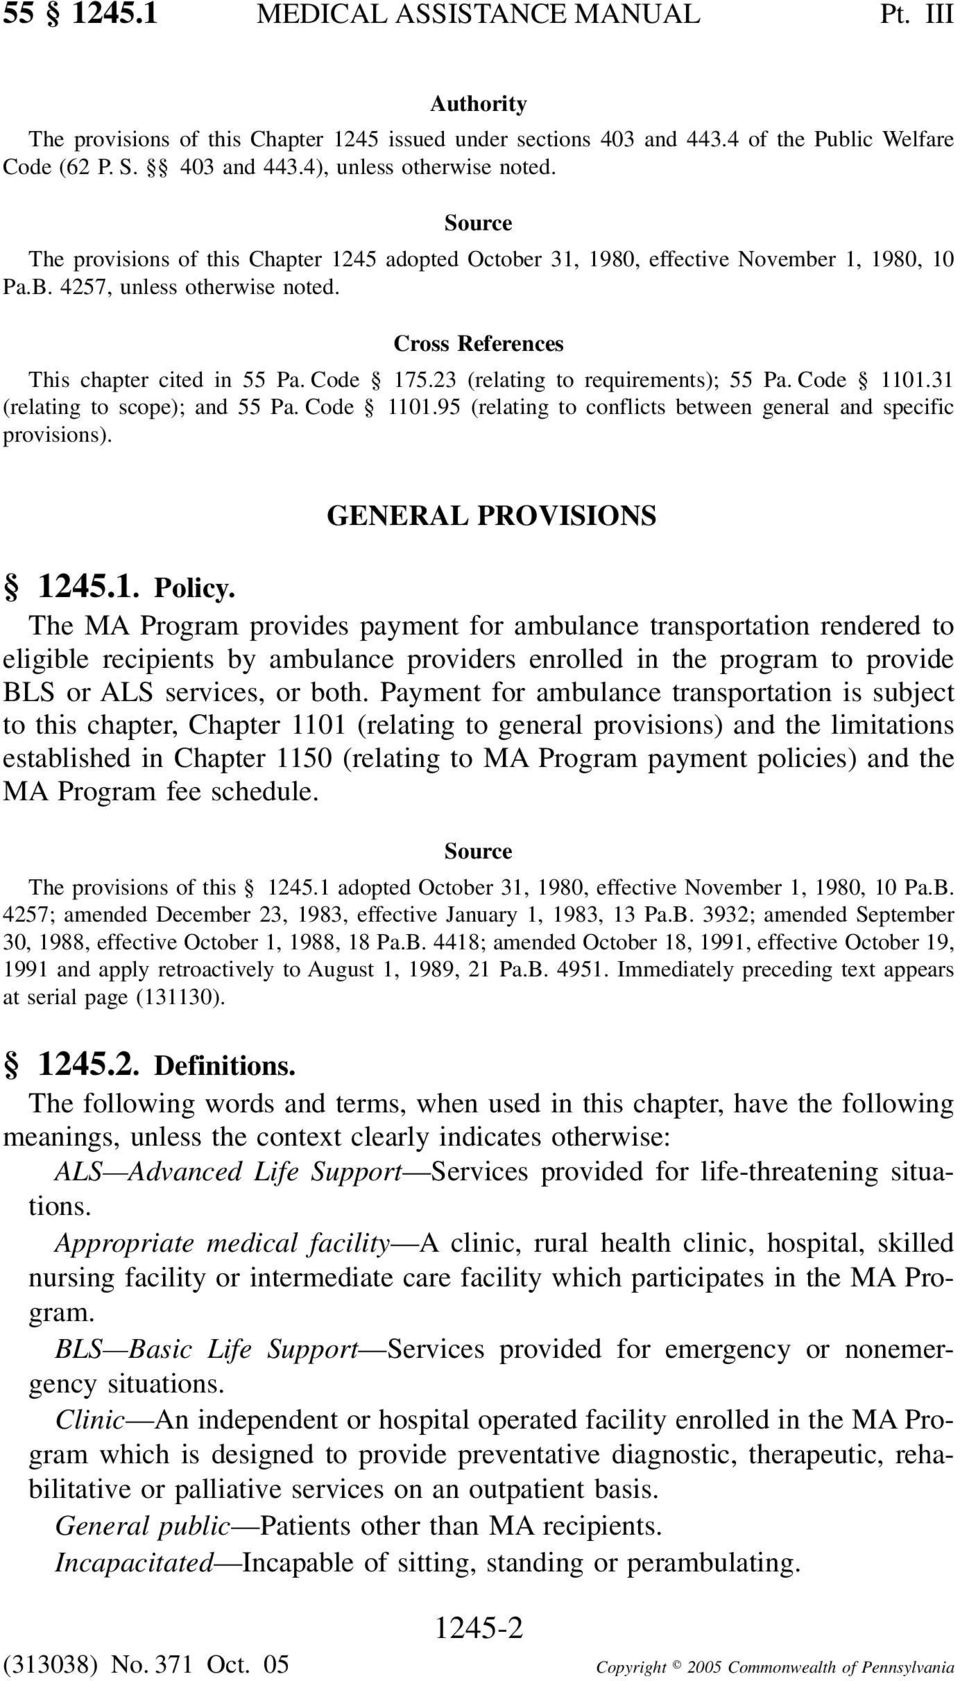 23 (relating to requirements); 55 Pa. Code 1101.31 (relating to scope); and 55 Pa. Code 1101.95 (relating to conflicts between general and specific provisions). GENERAL PROVISIONS 1245.1. Policy.